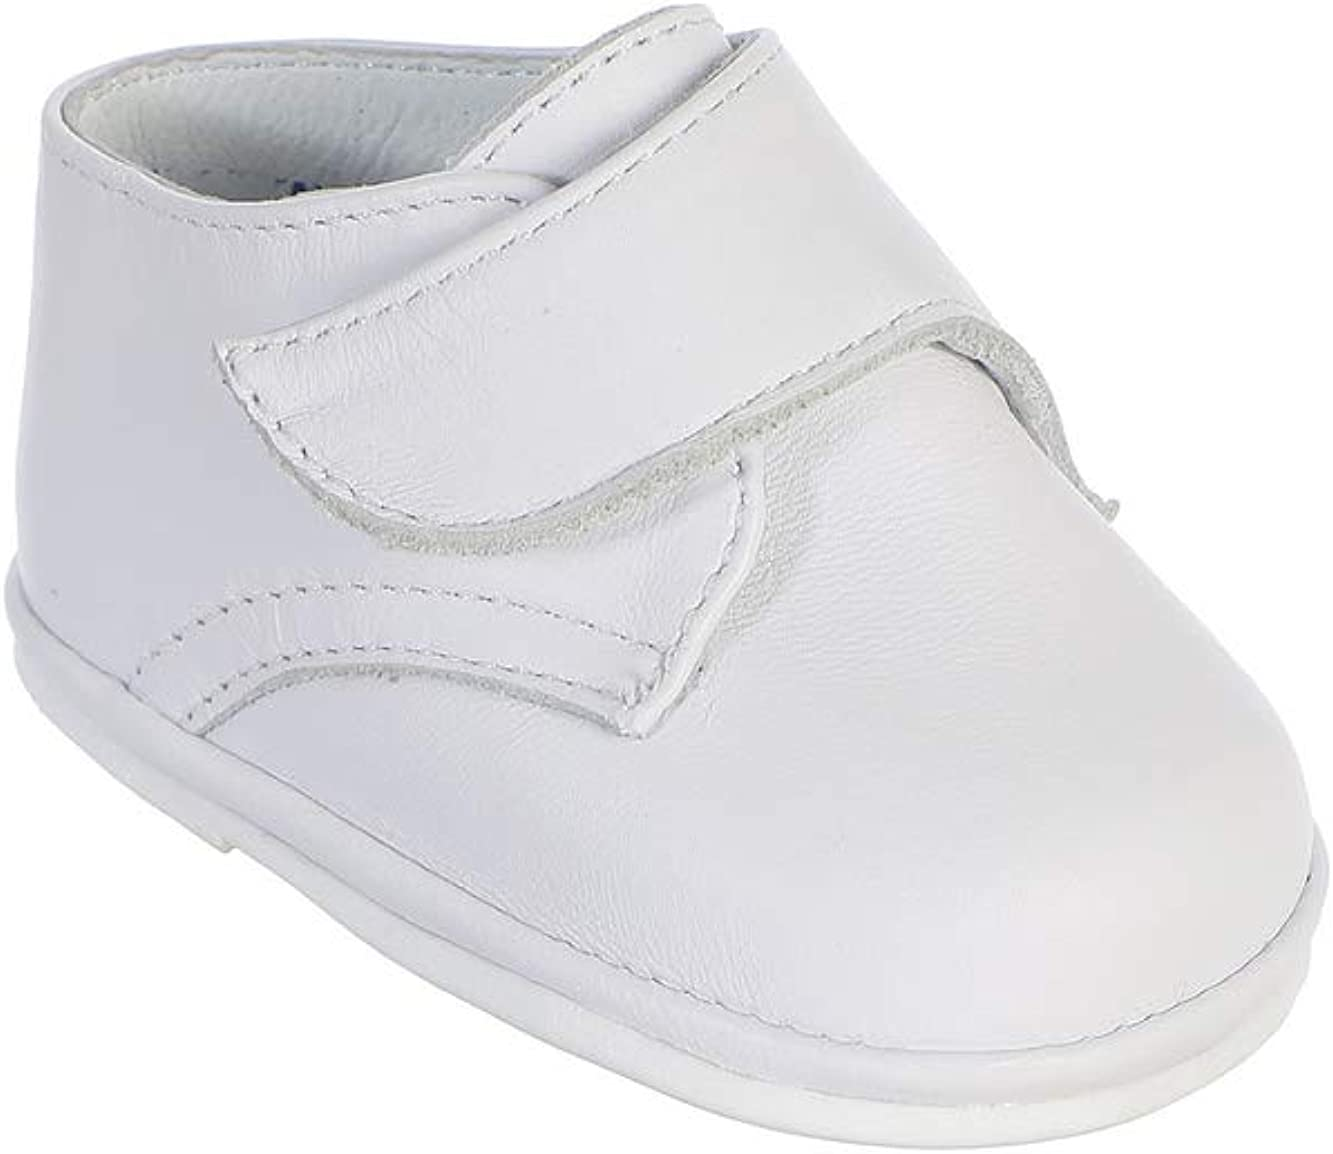 Avery Hill Boy's White Hook and Loop Fastener Strap Leather Special Occasion Shoes